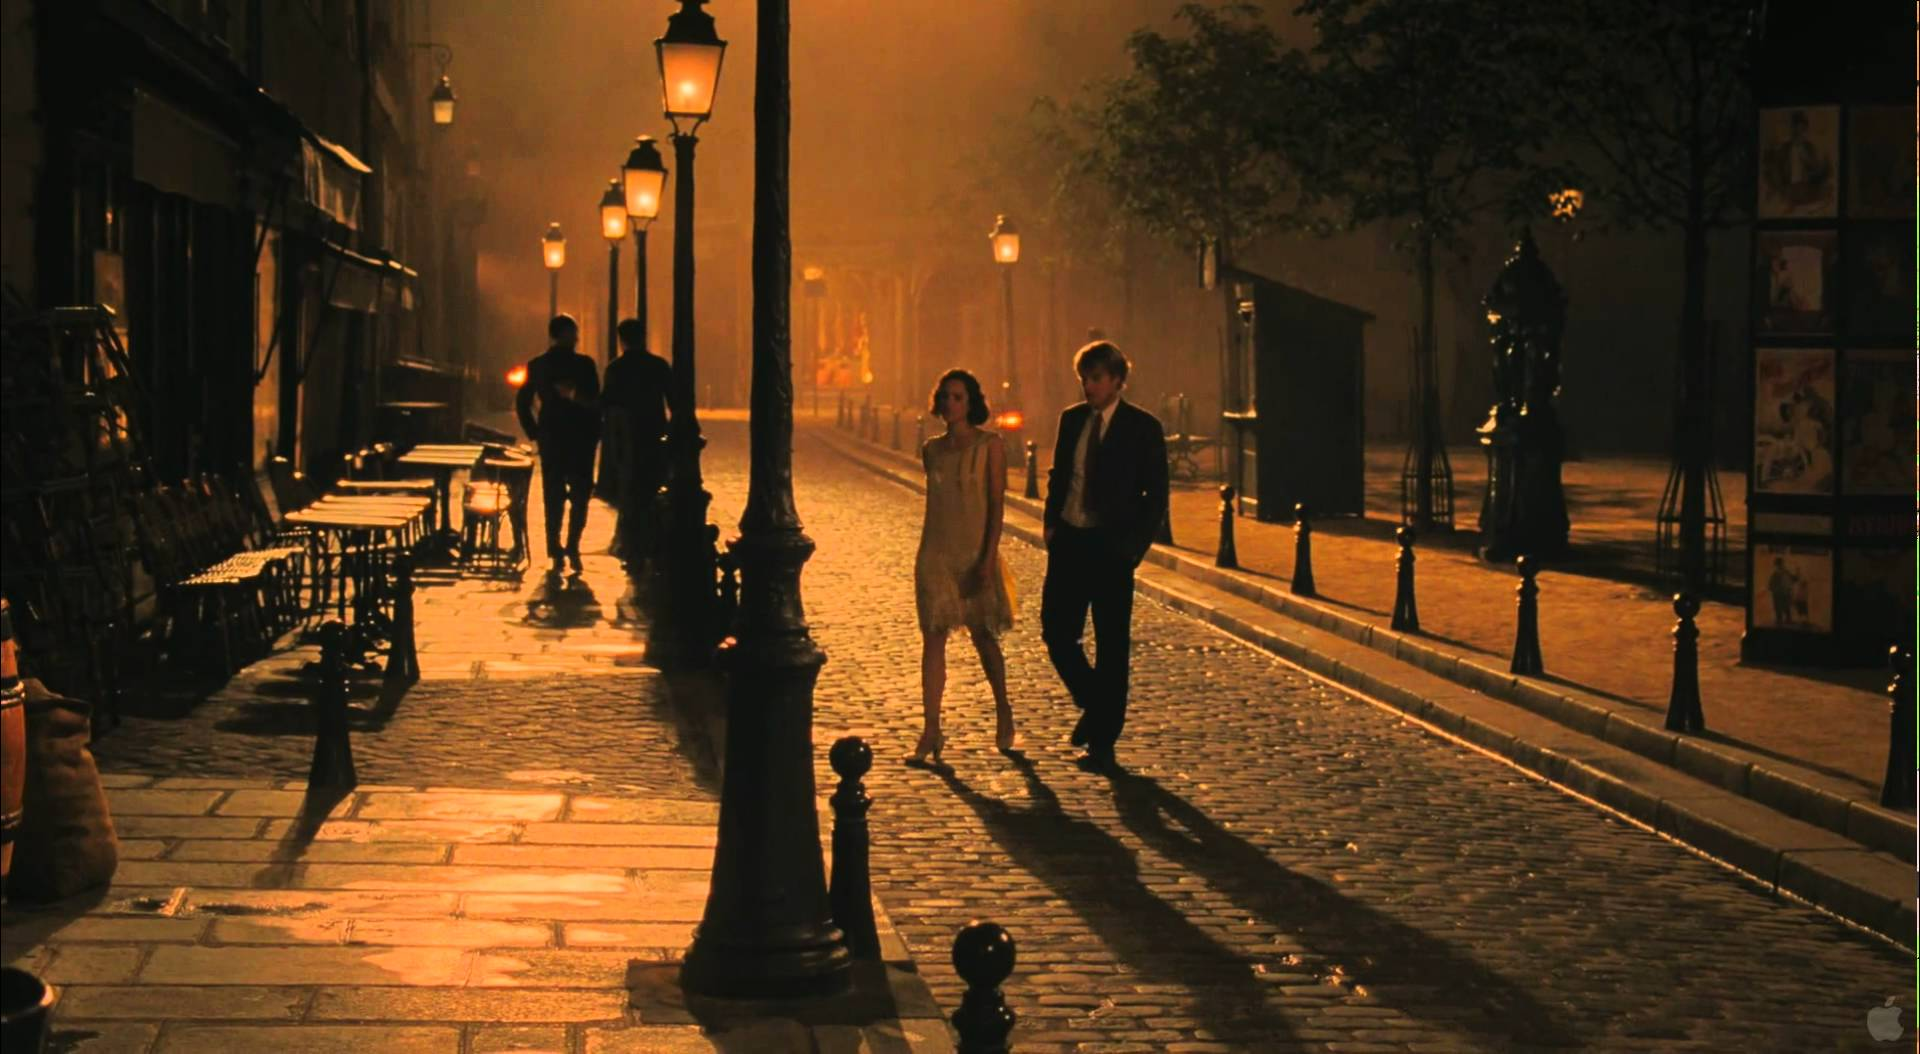 HQ Midnight In Paris Wallpapers | File 176.64Kb